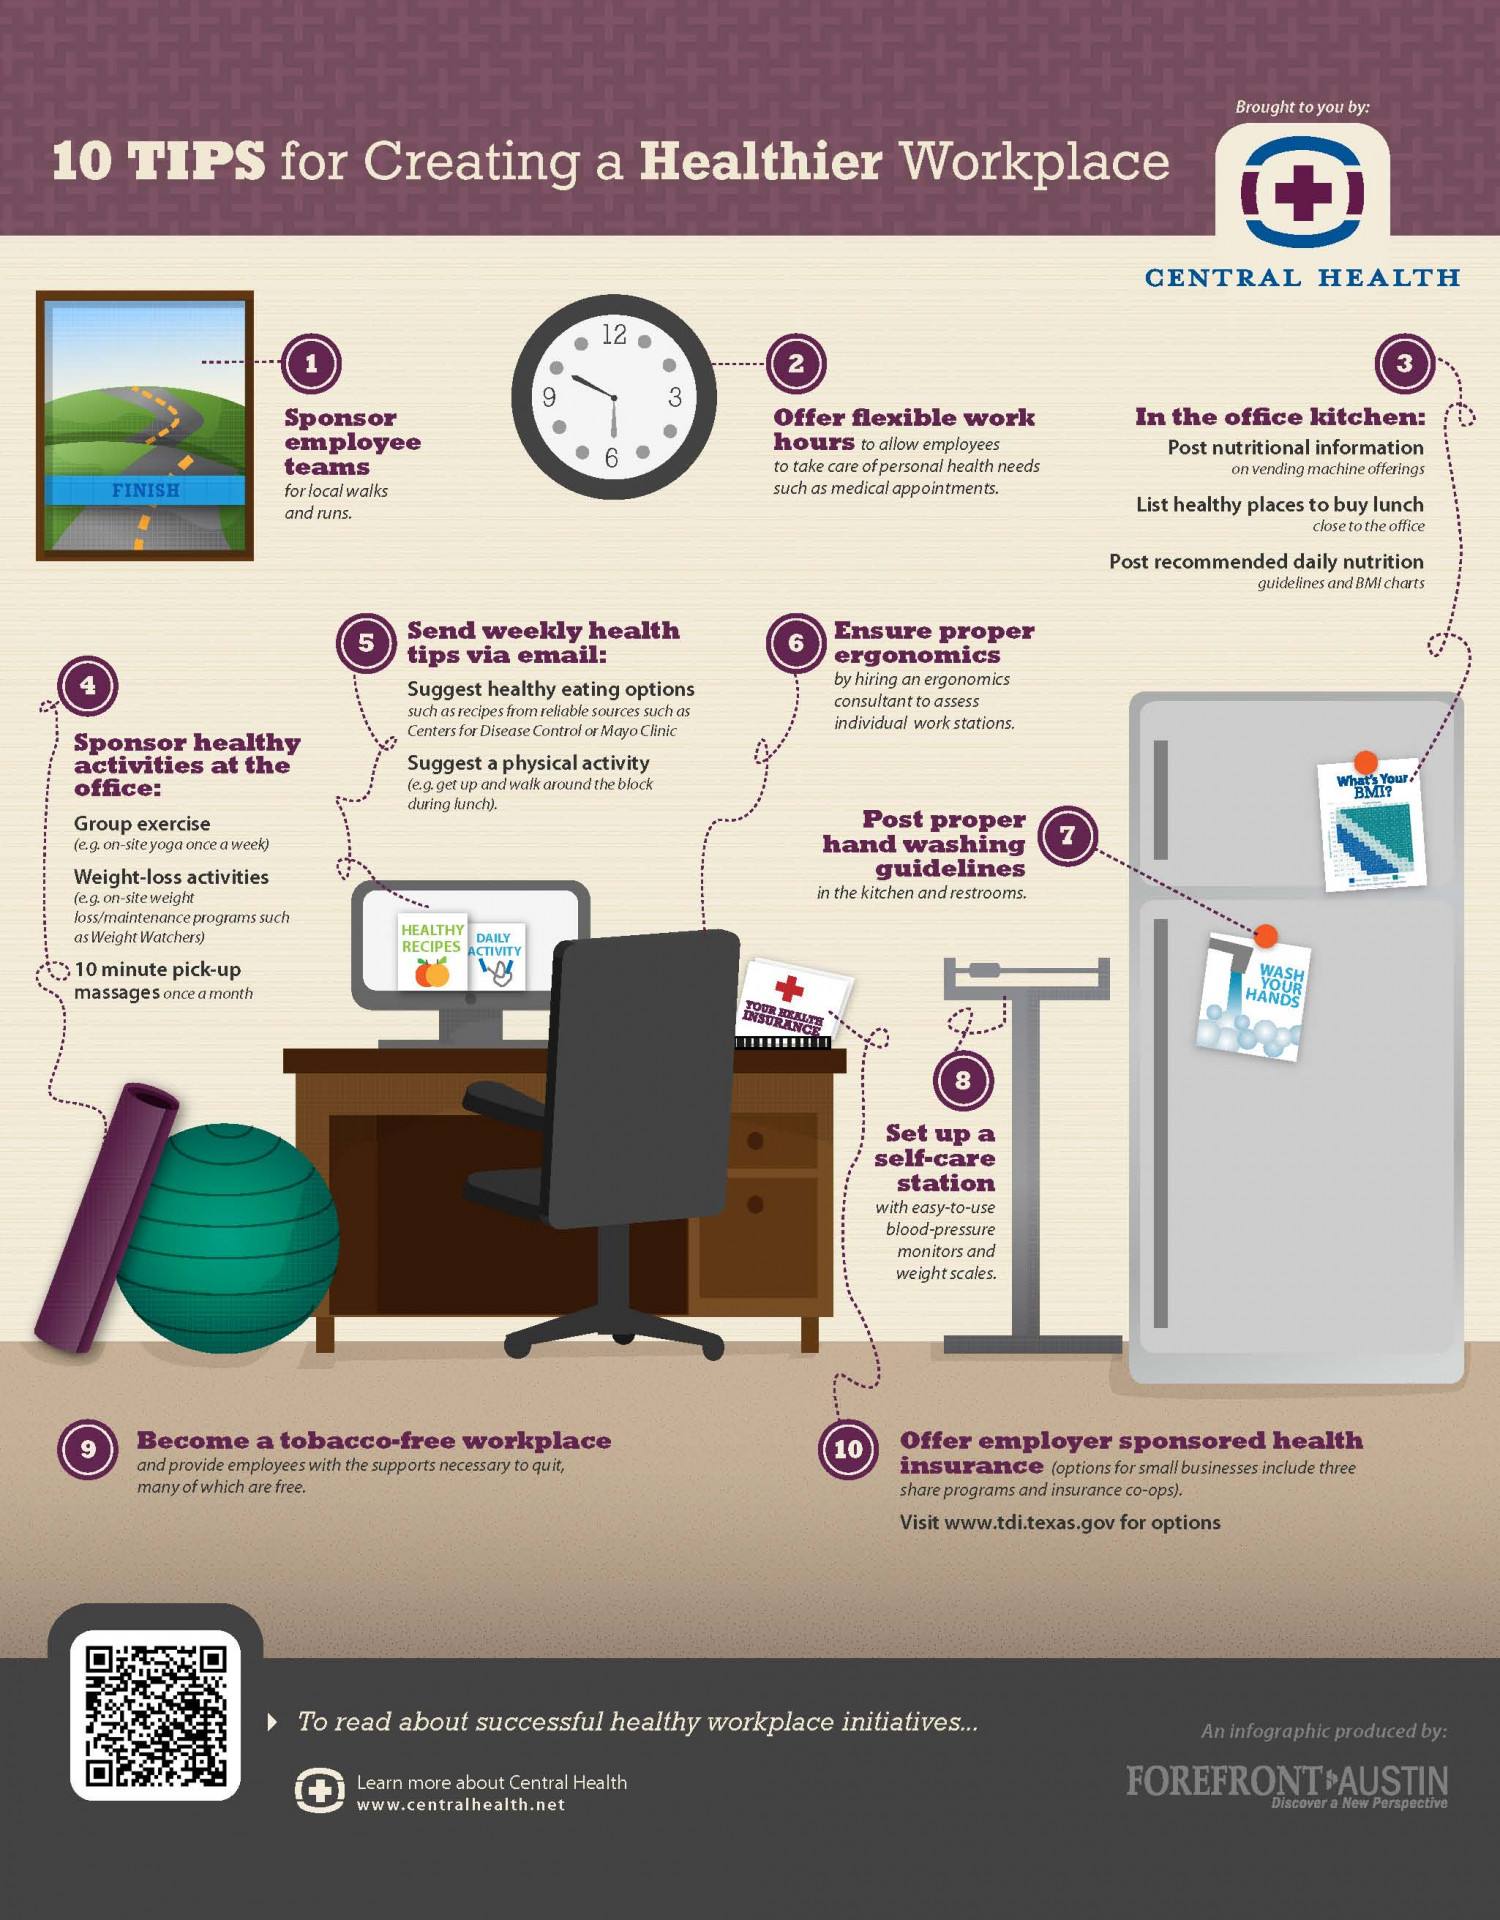 10 Tips for Creating a Healthier Workplace Infographic